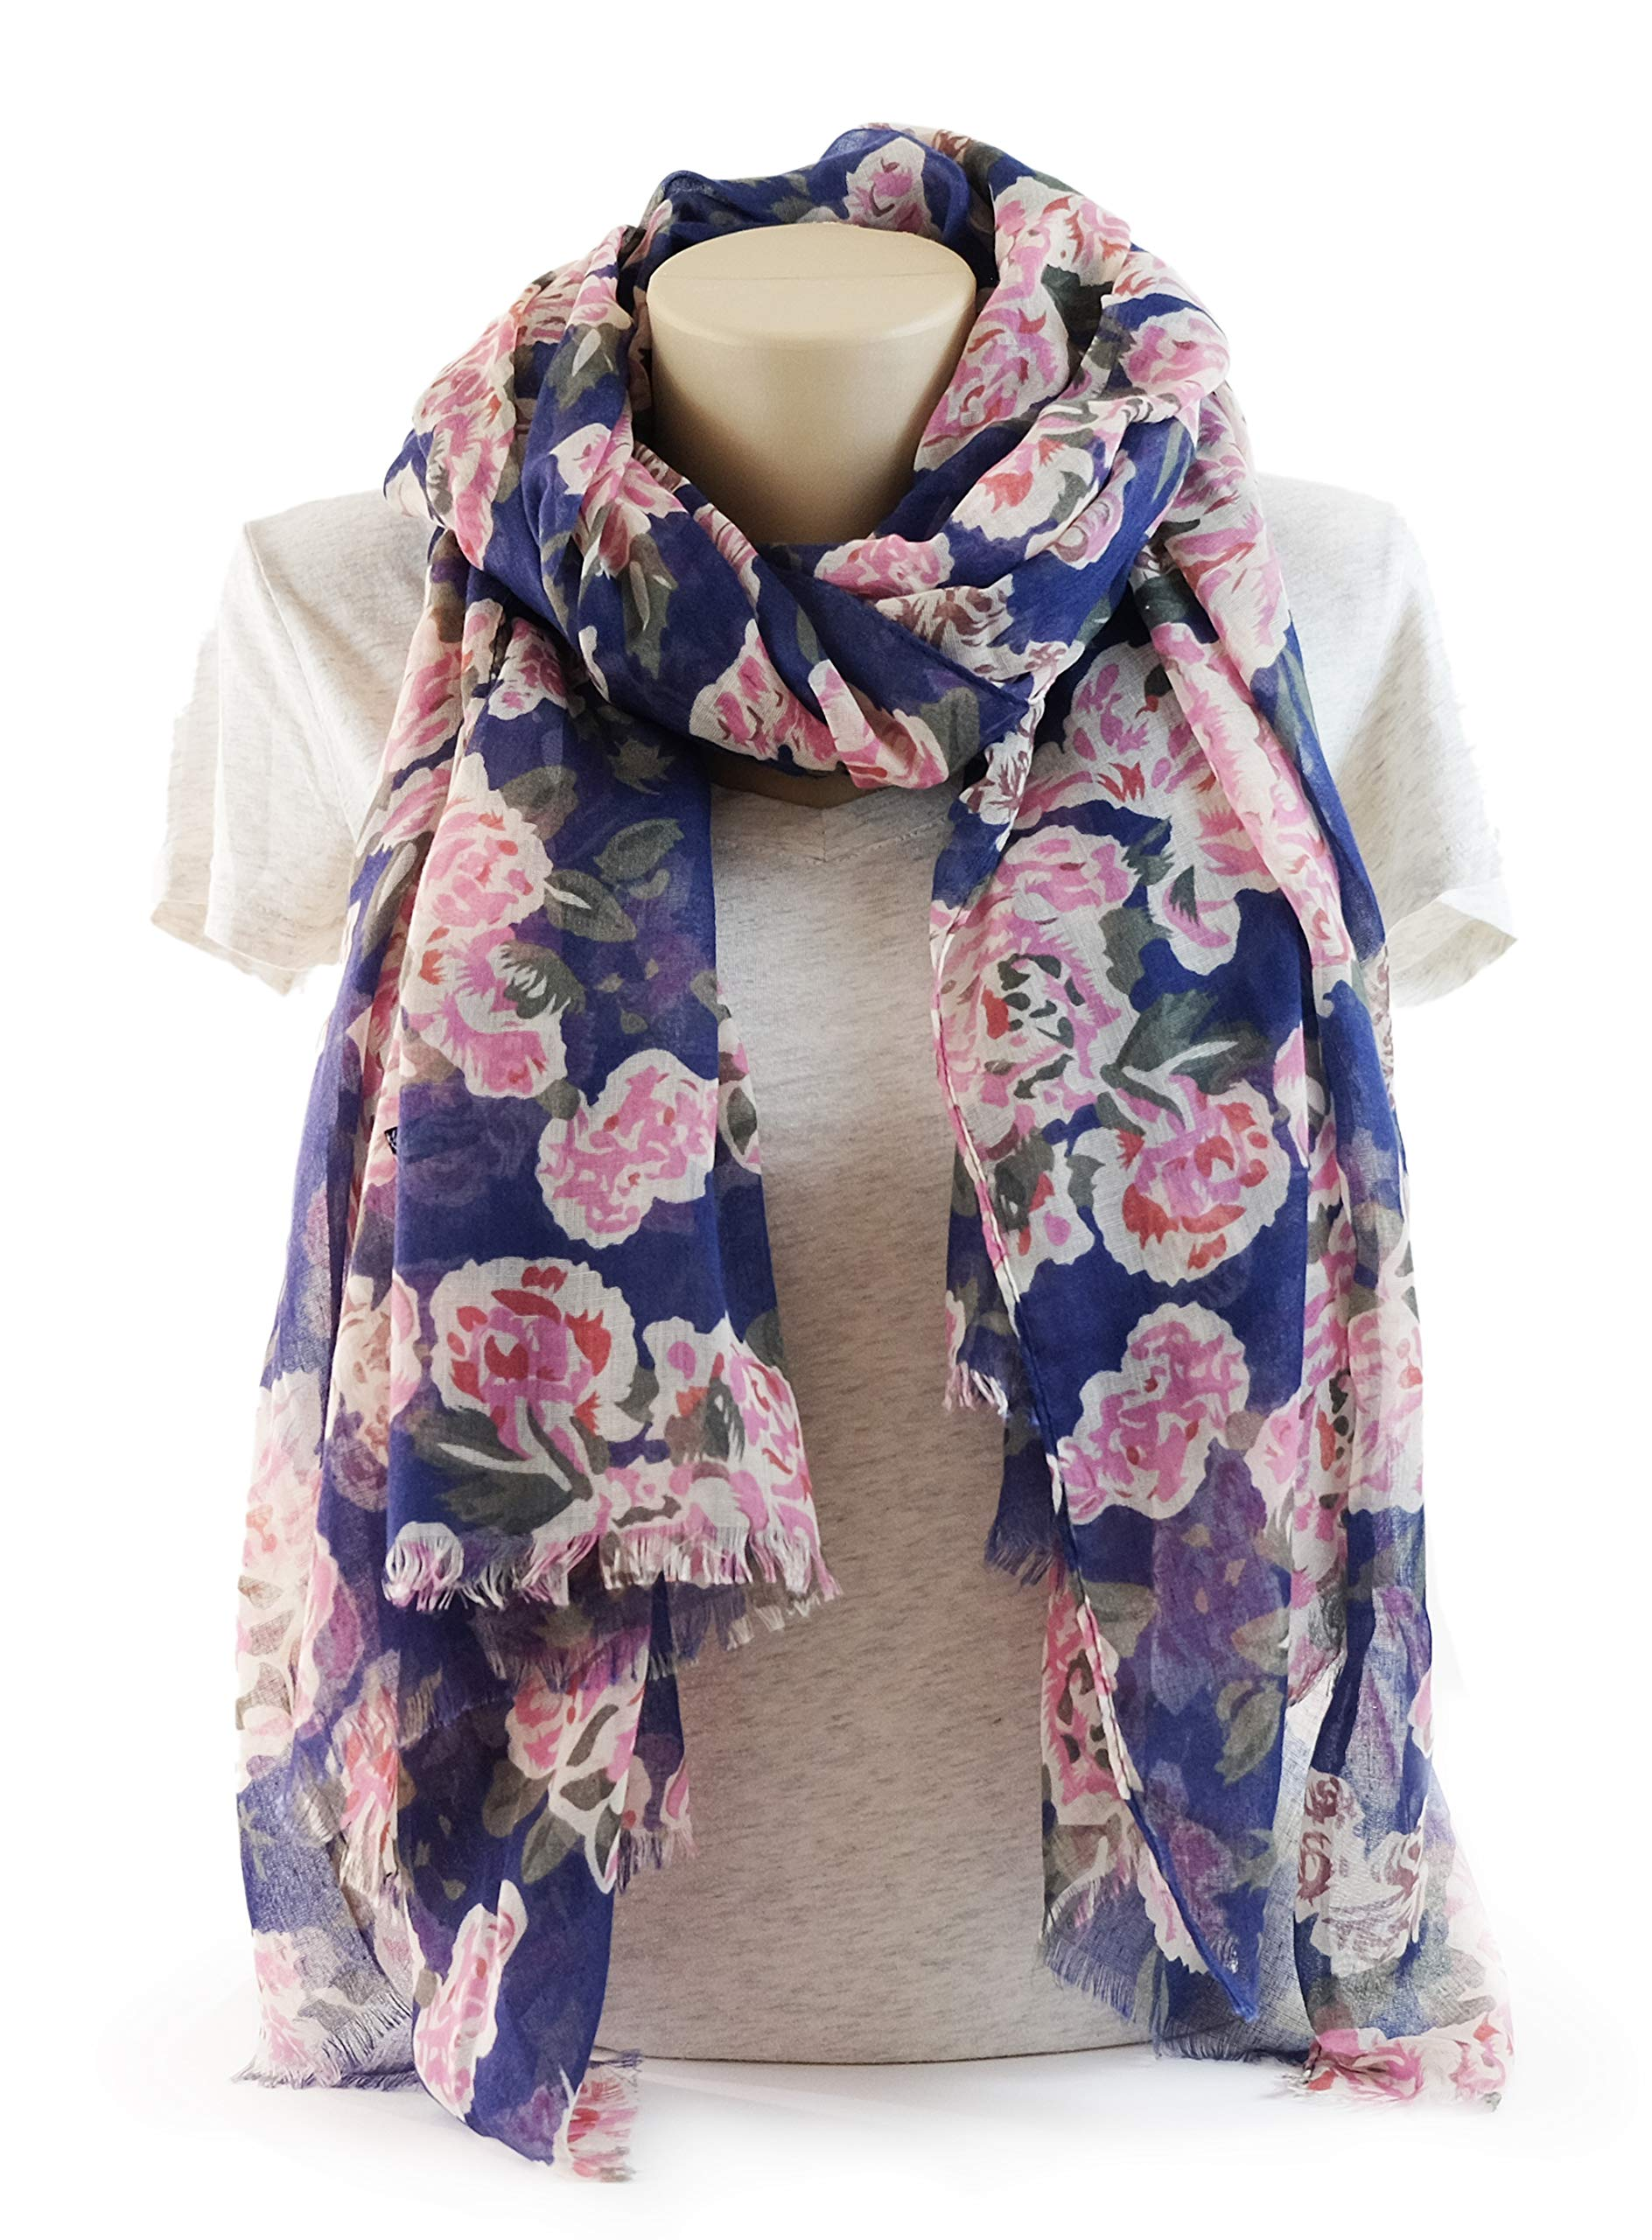 Scarves for Women: Lightweight Elegant Floral Fashion shawl by MIMOSITO (Blue-Pink Rose)